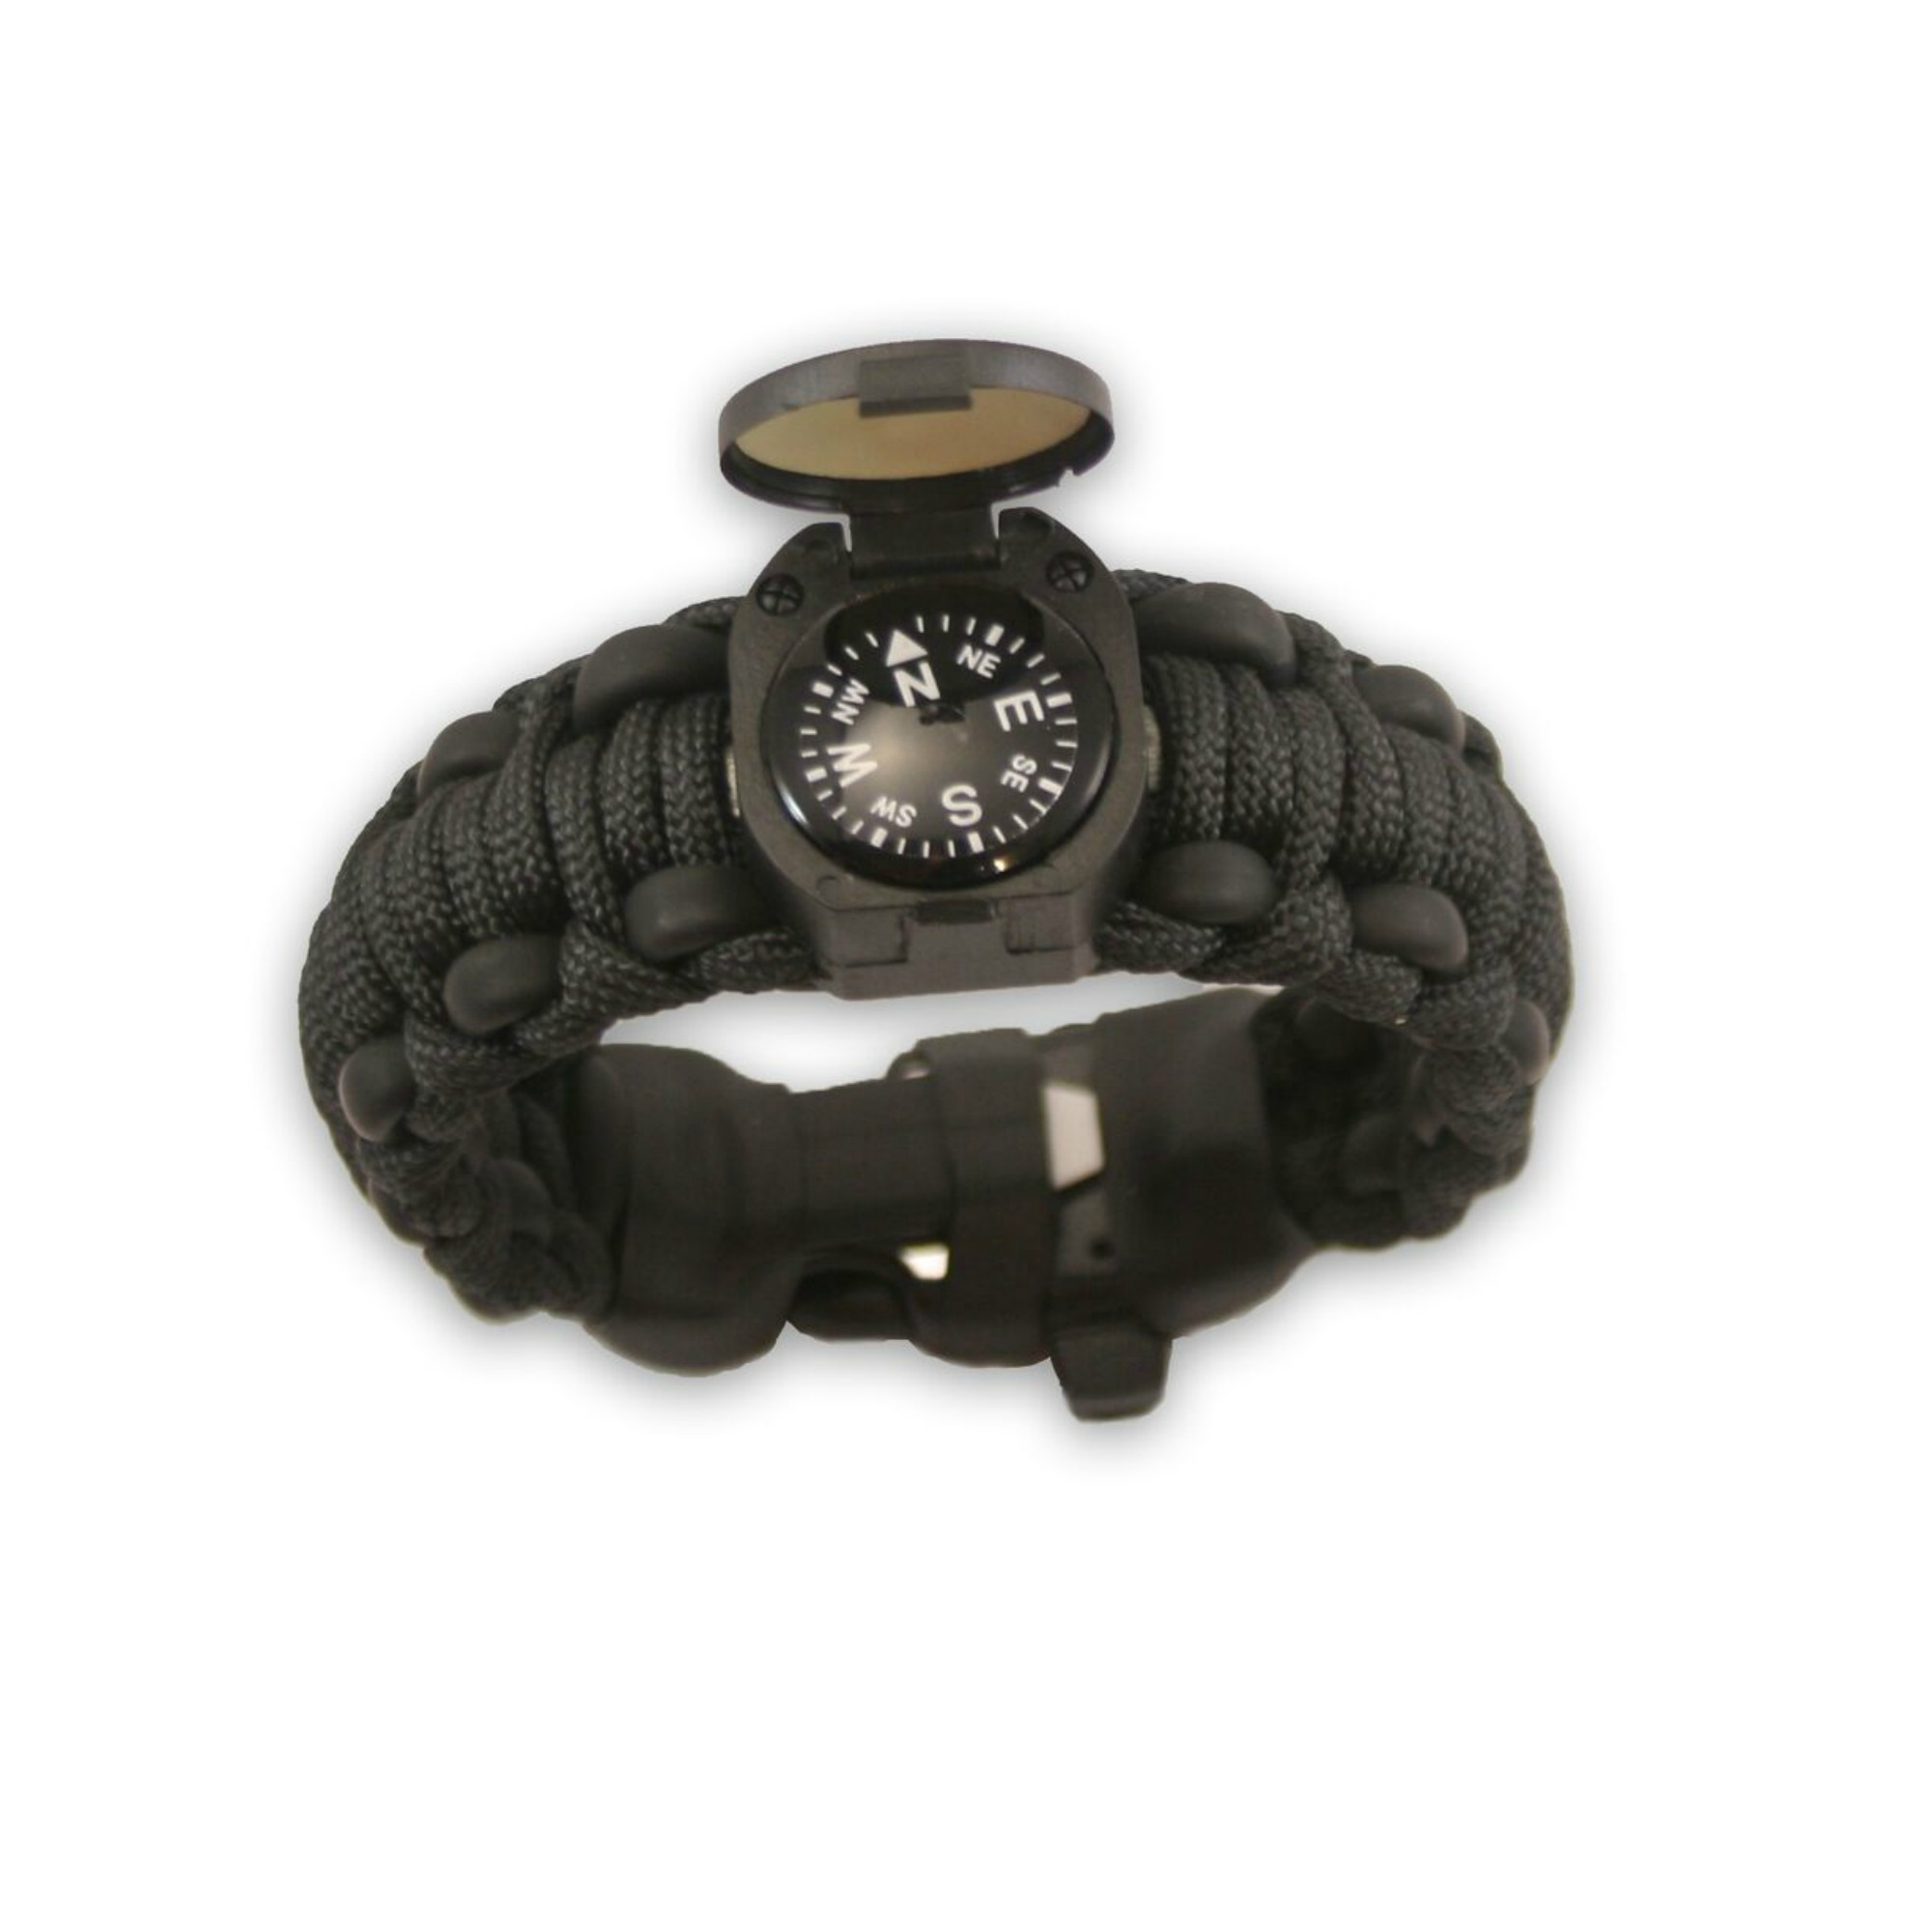 Wazoo Survival Gear Bracelet